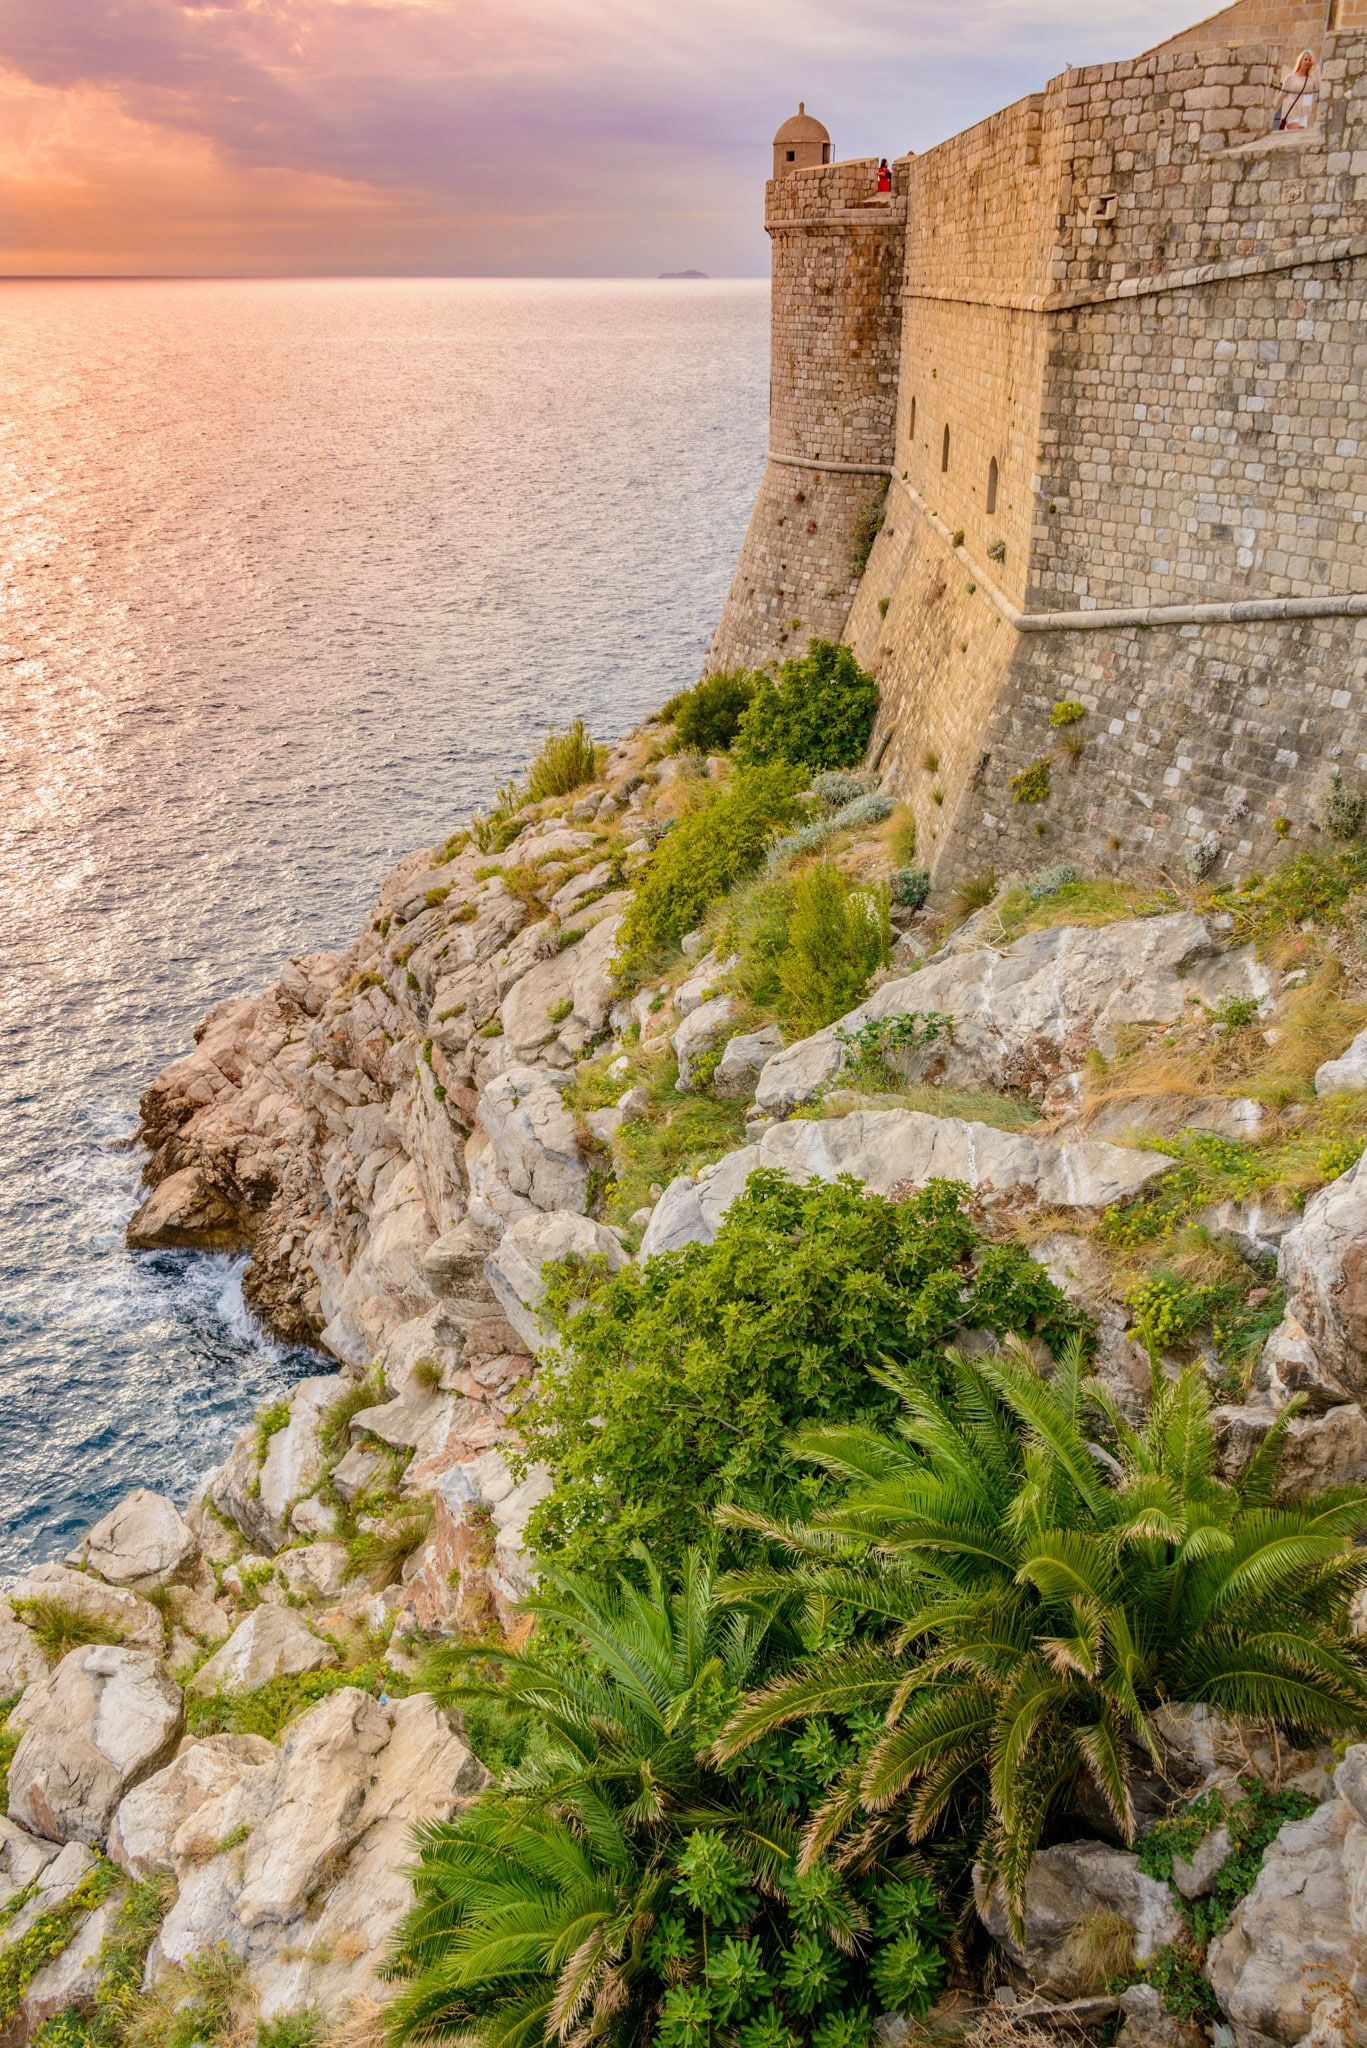 A view of the Dubrovnik Old City wall taken from the city wall between St. Petar's and St. Margarita's churches